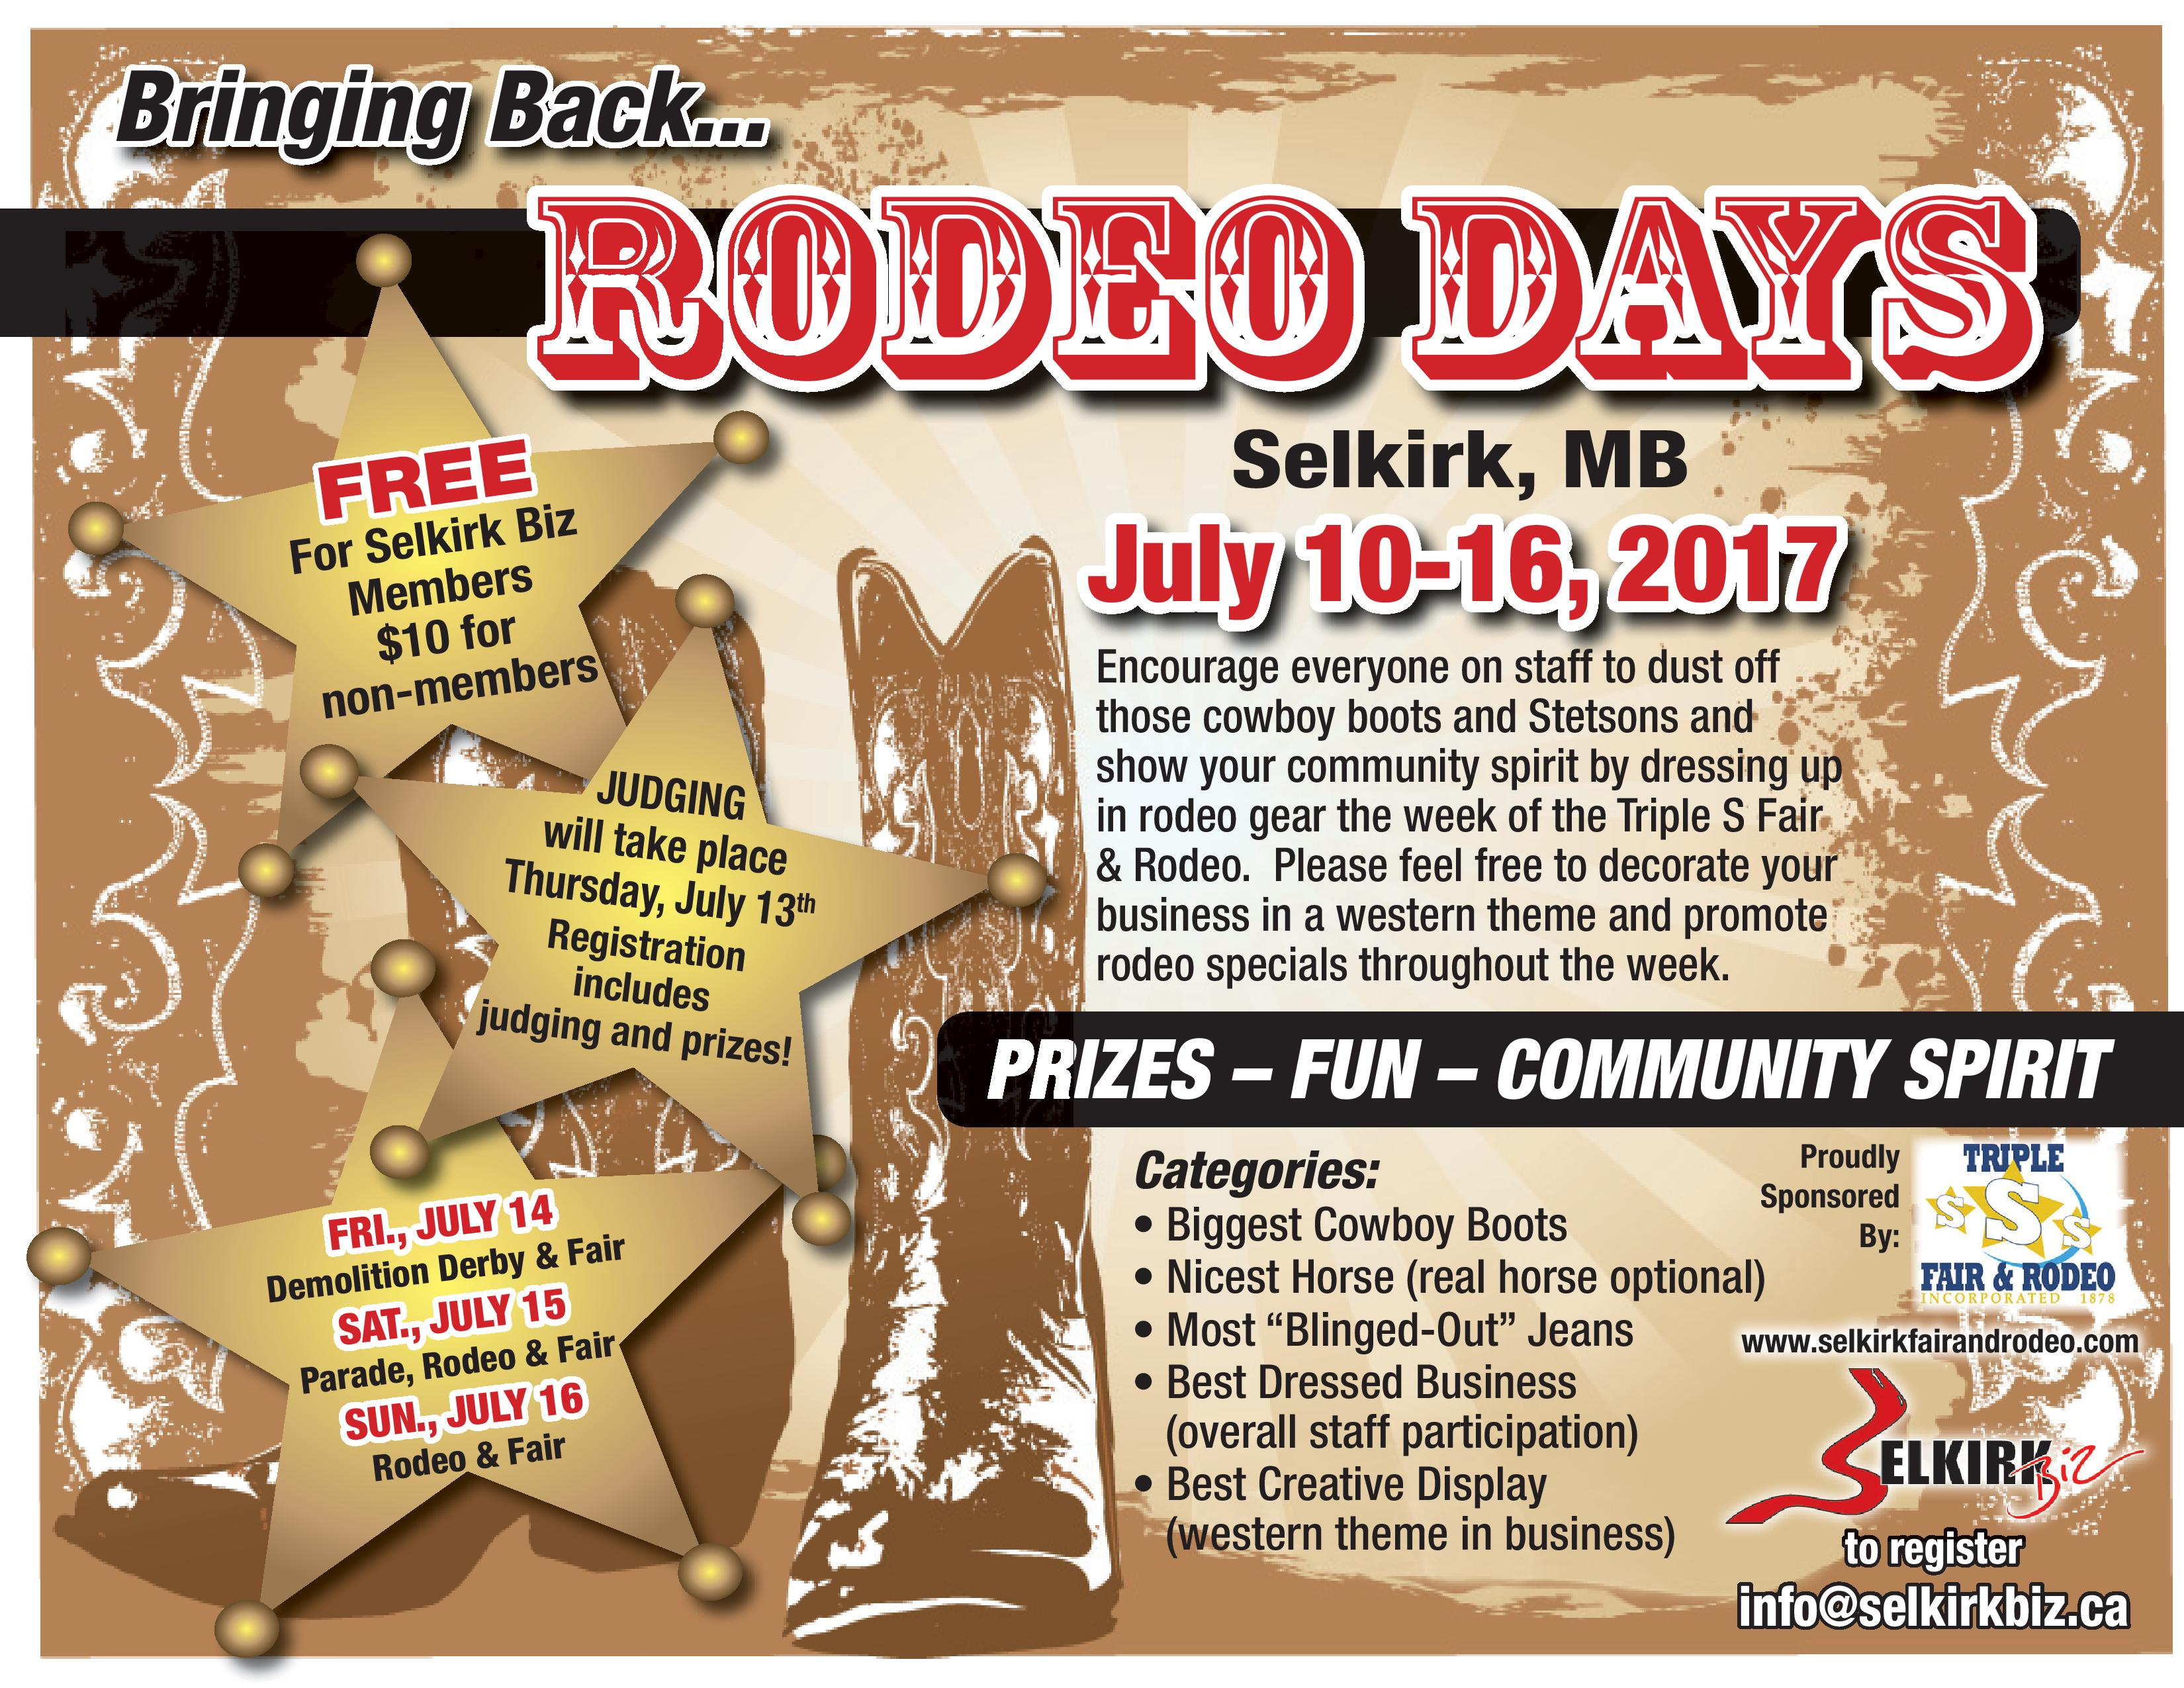 2017 Rodeo Days